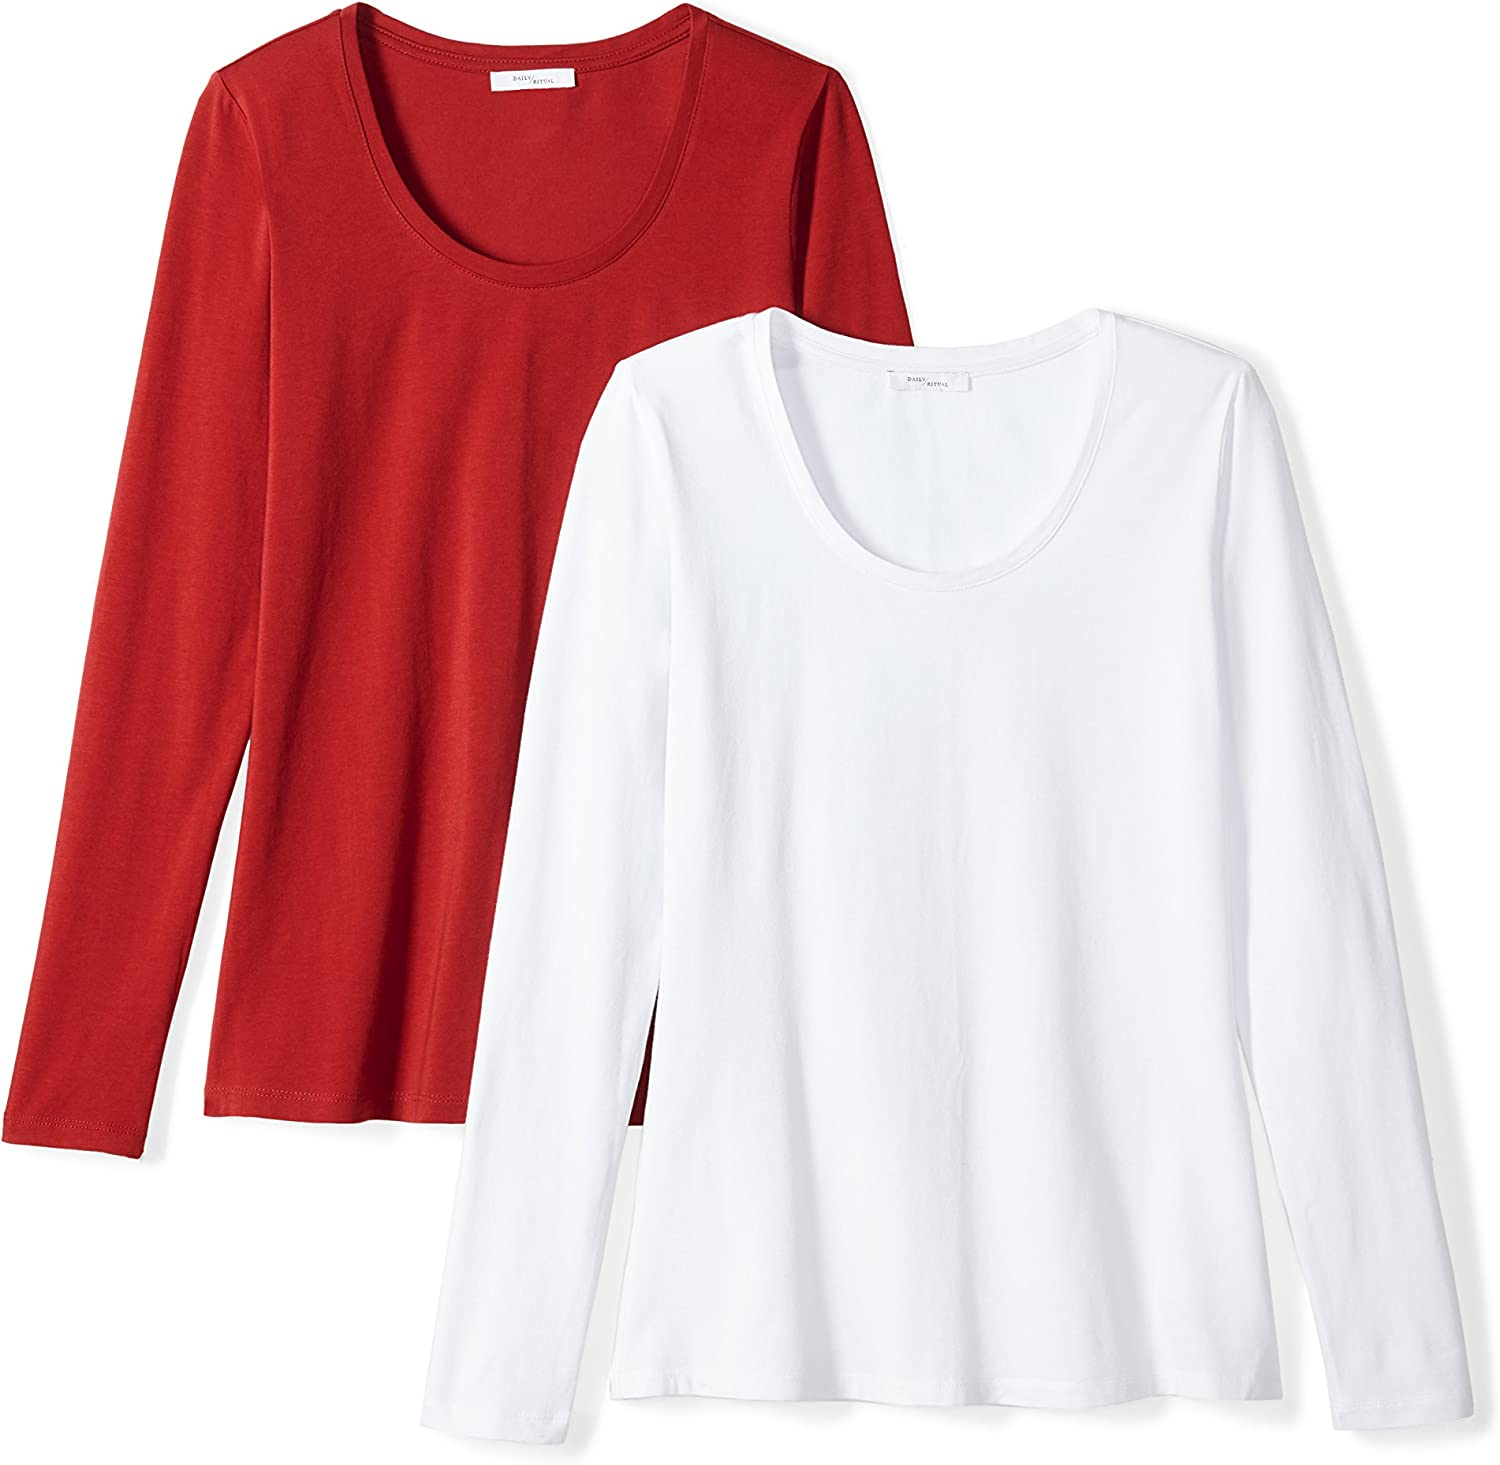 Brand Daily Ritual Womens Stretch Supima Long-Sleeve Scoop Neck T-Shirt